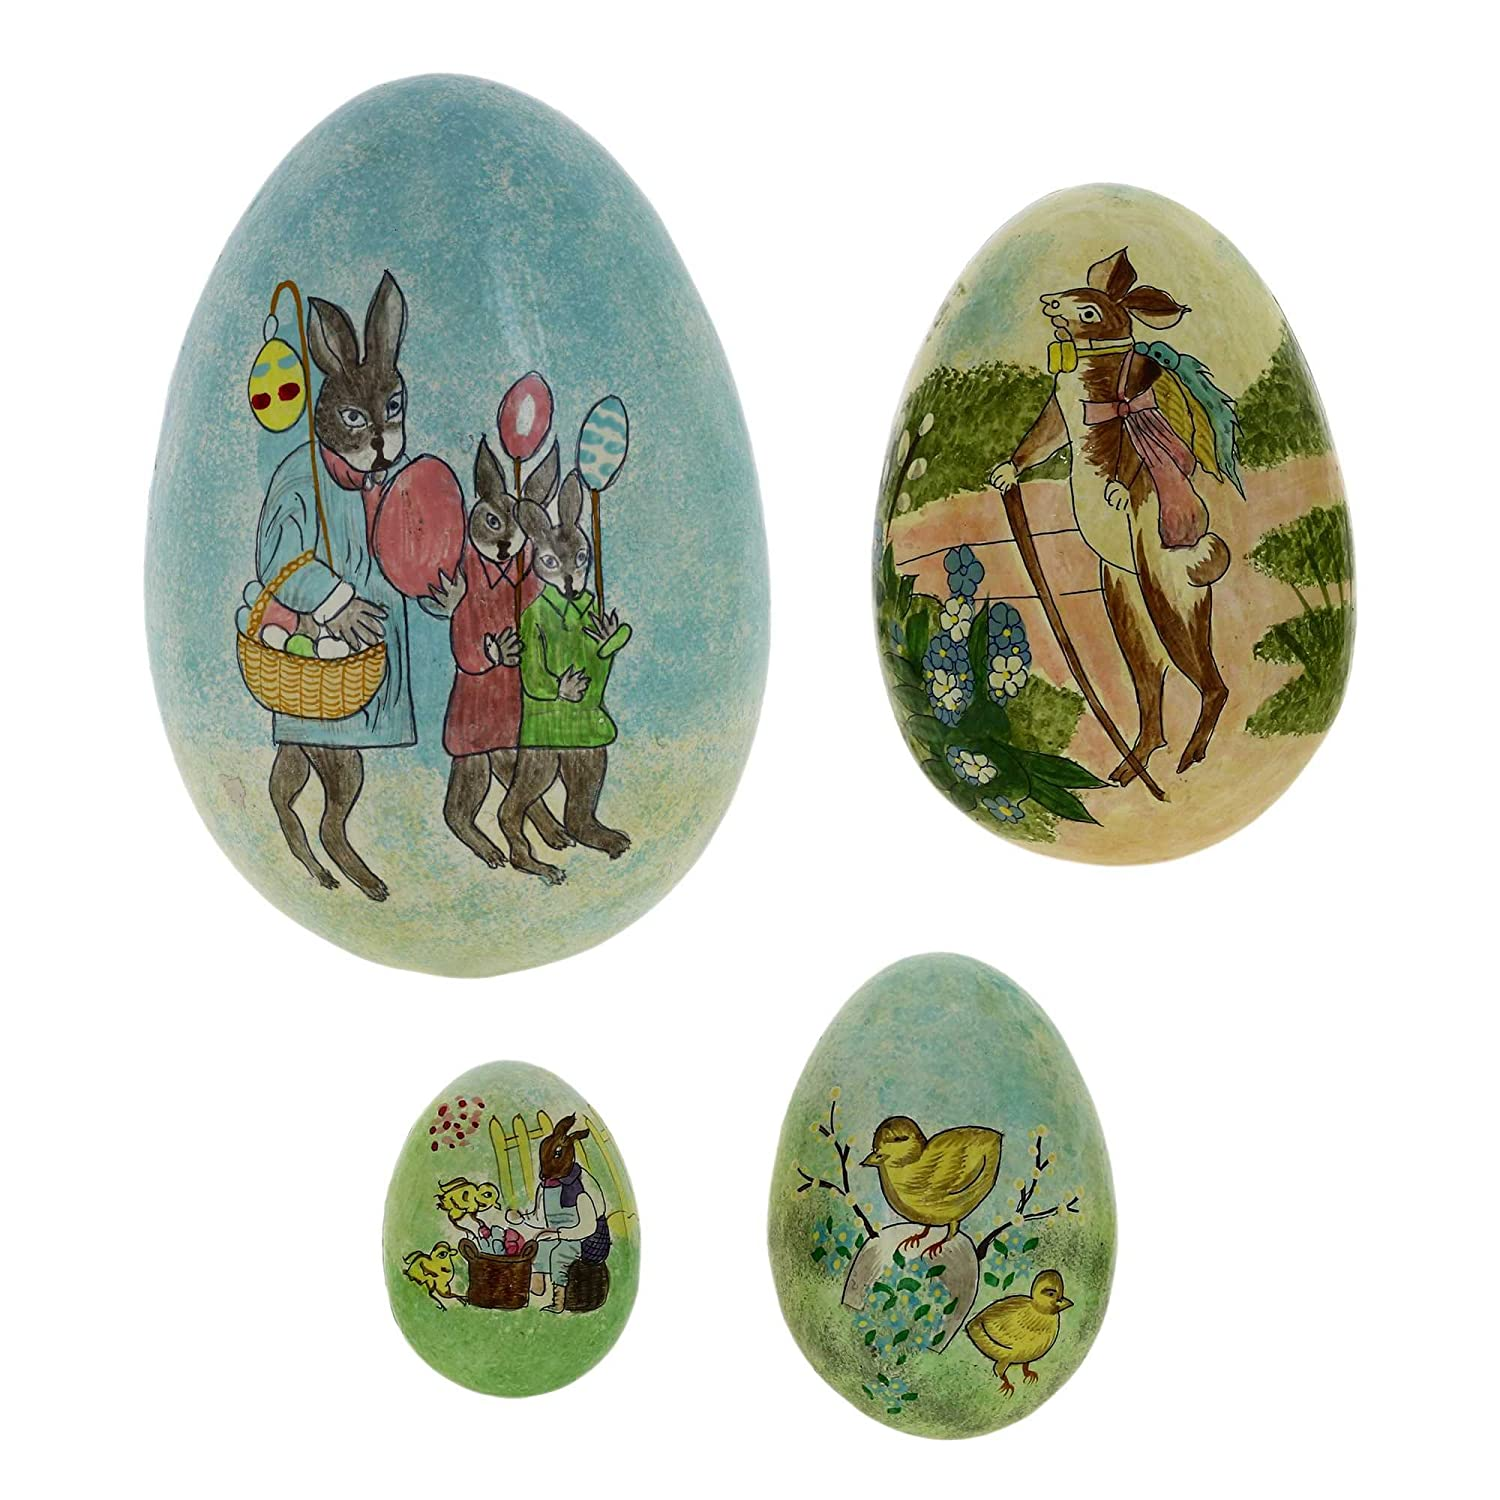 Set of handmade easter egg gift boxes includes 4 paper mache set of handmade easter egg gift boxes includes 4 paper mache eggs easter decor gifts for easter amazon kitchen home negle Image collections